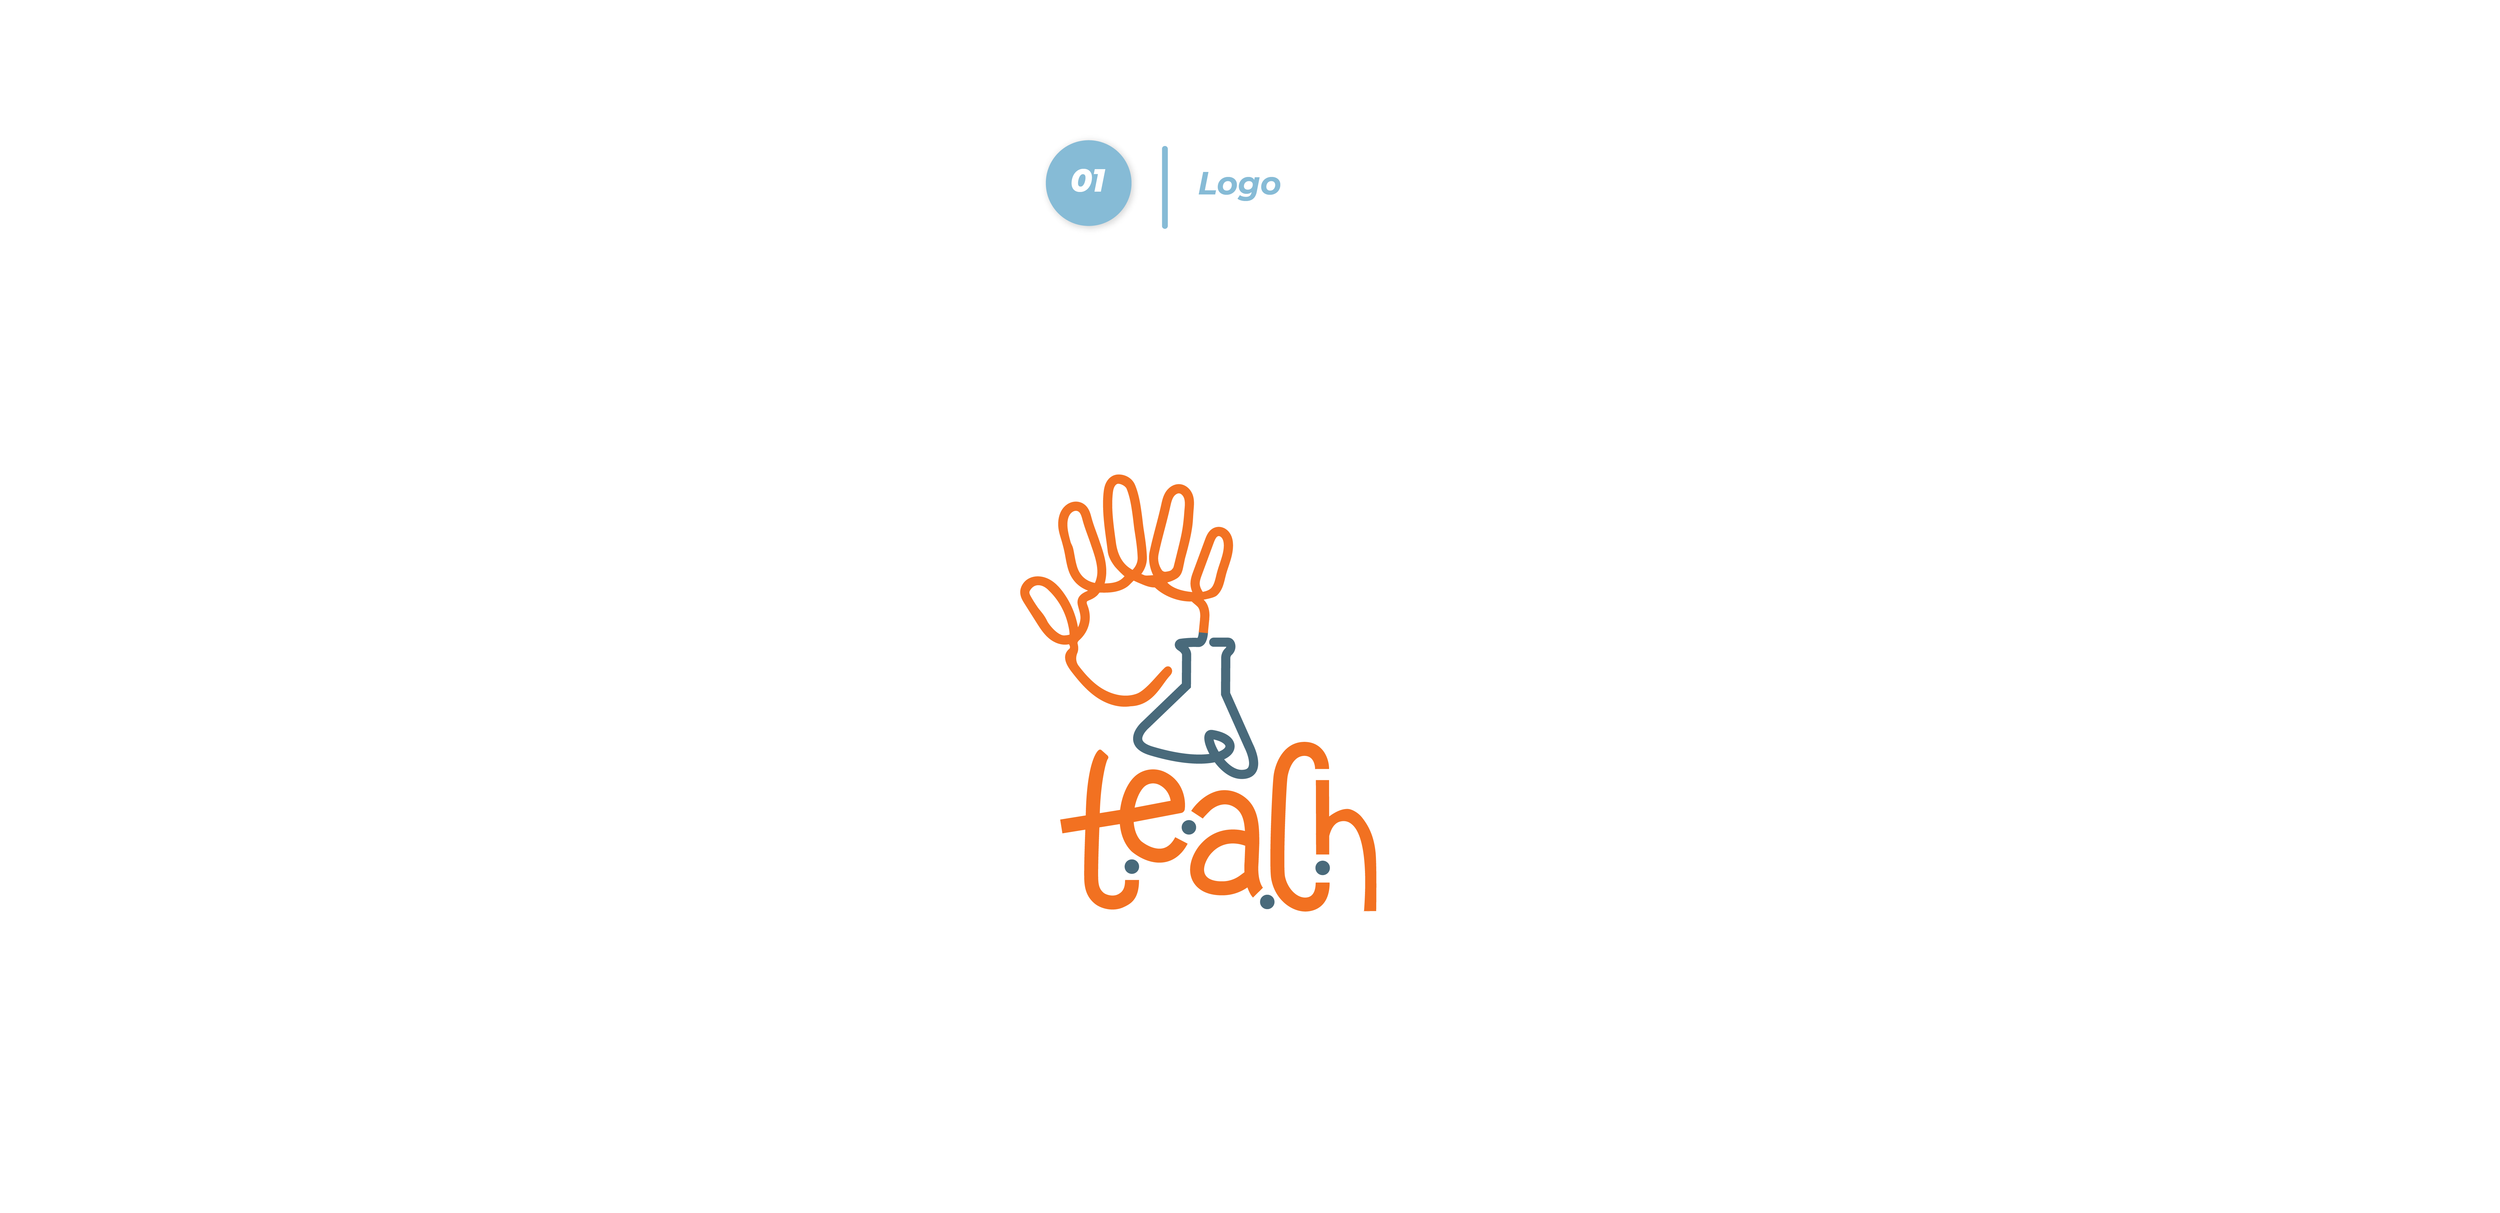 TeachLayout_01_Logo.png